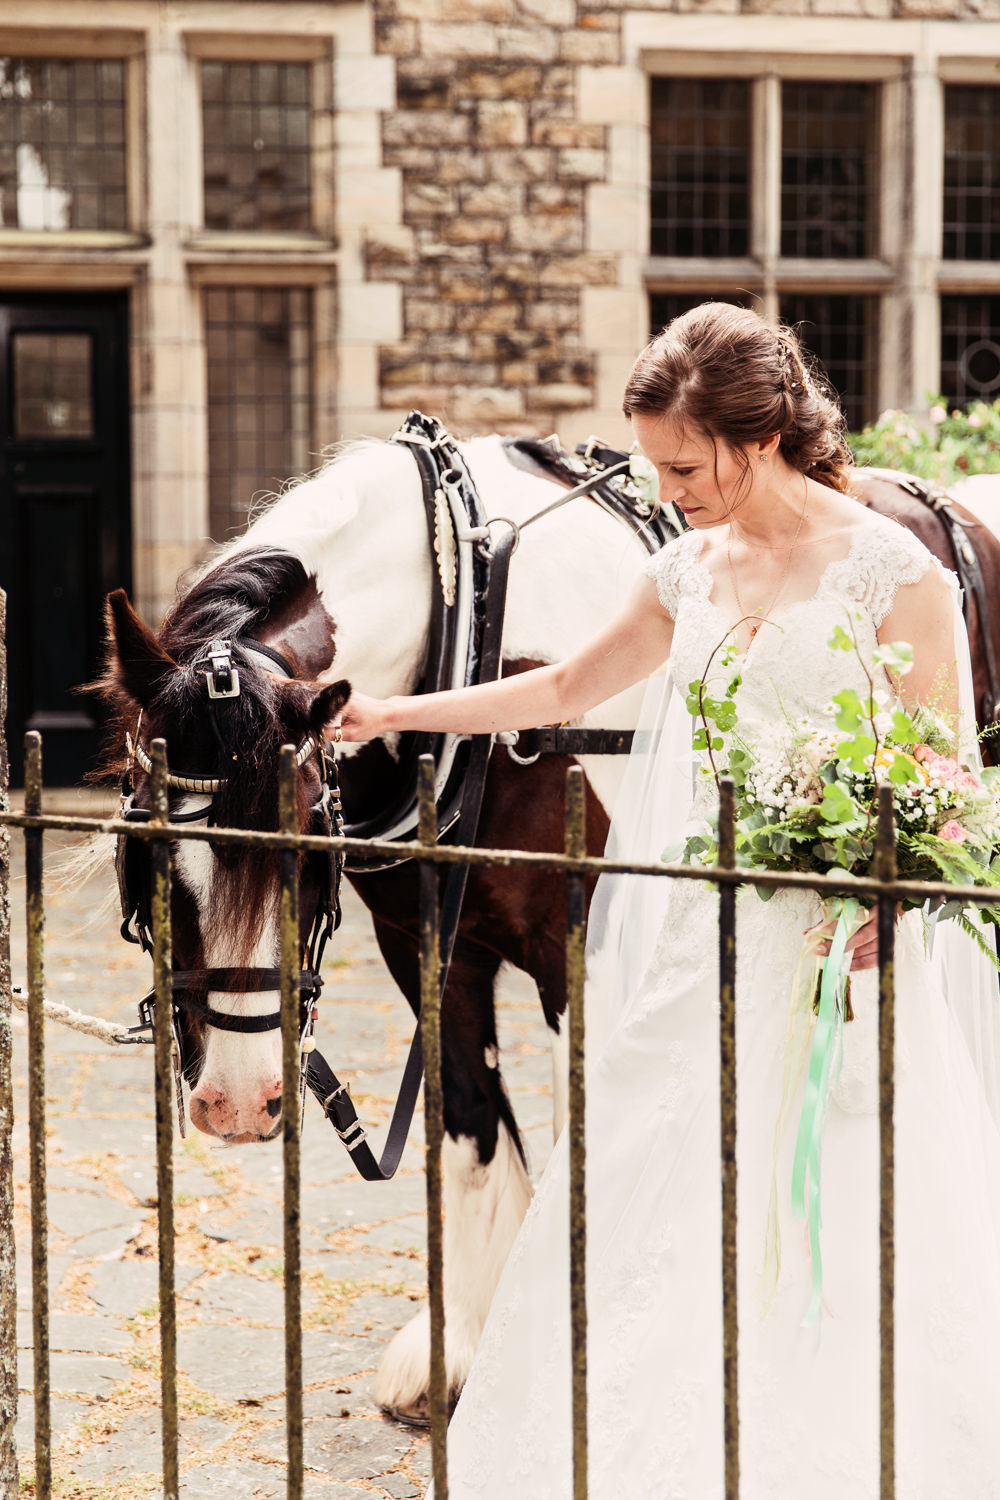 Bride Bridal Bespoke Dress Cape Sweetheart Neckline A Line Lace Wildflower Bouquet Horse Festival Wedding Mismatched Country Camilla Lucinda Photography